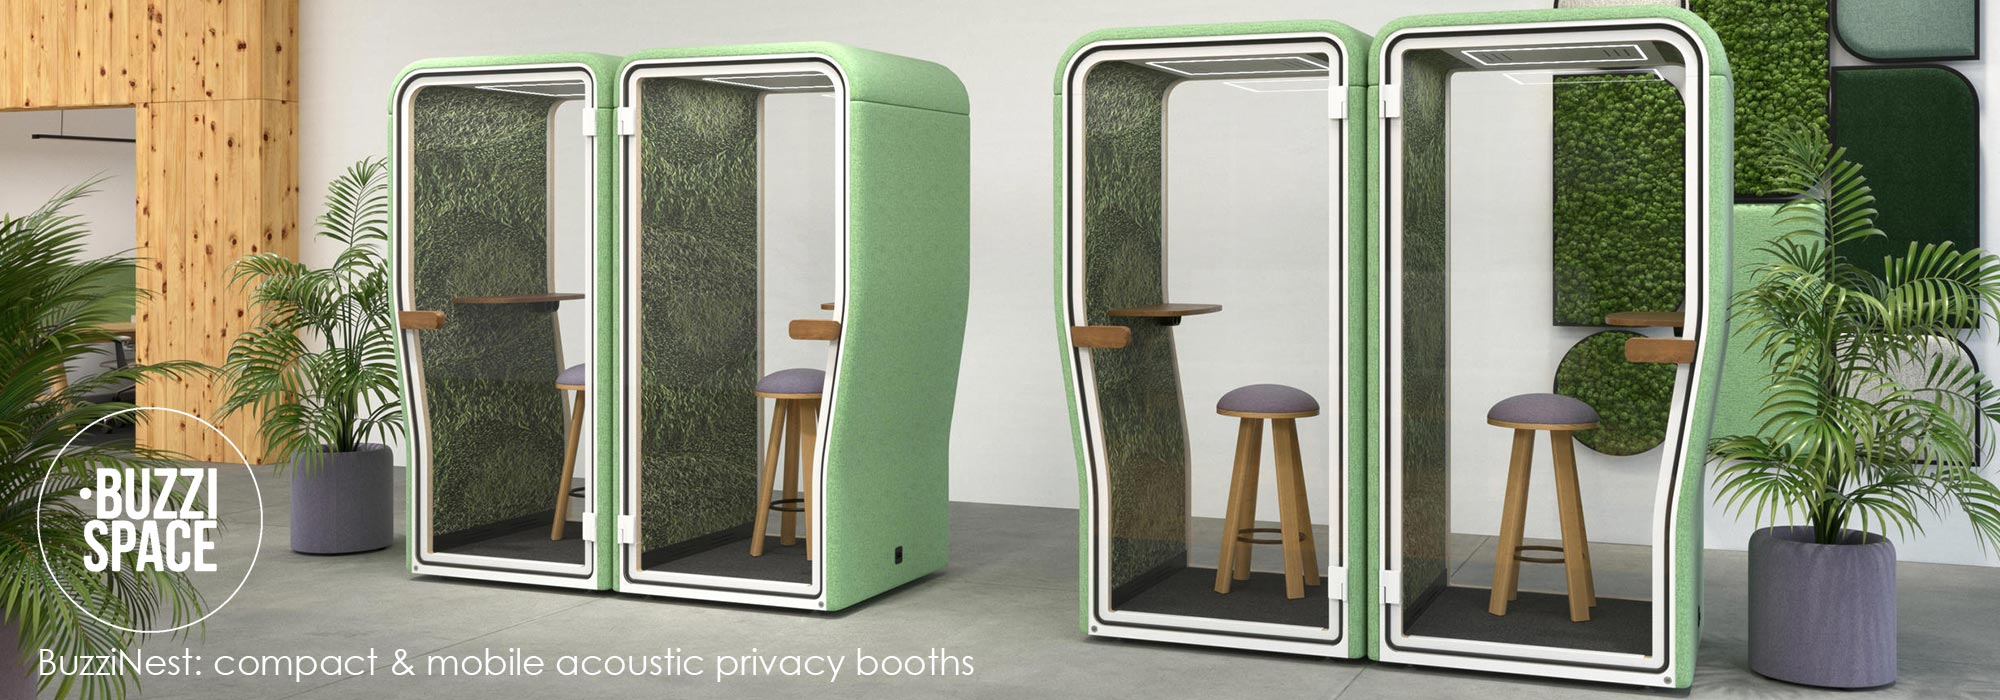 BuzziSpace BuzziNest compact mobile acoustic privacy booths